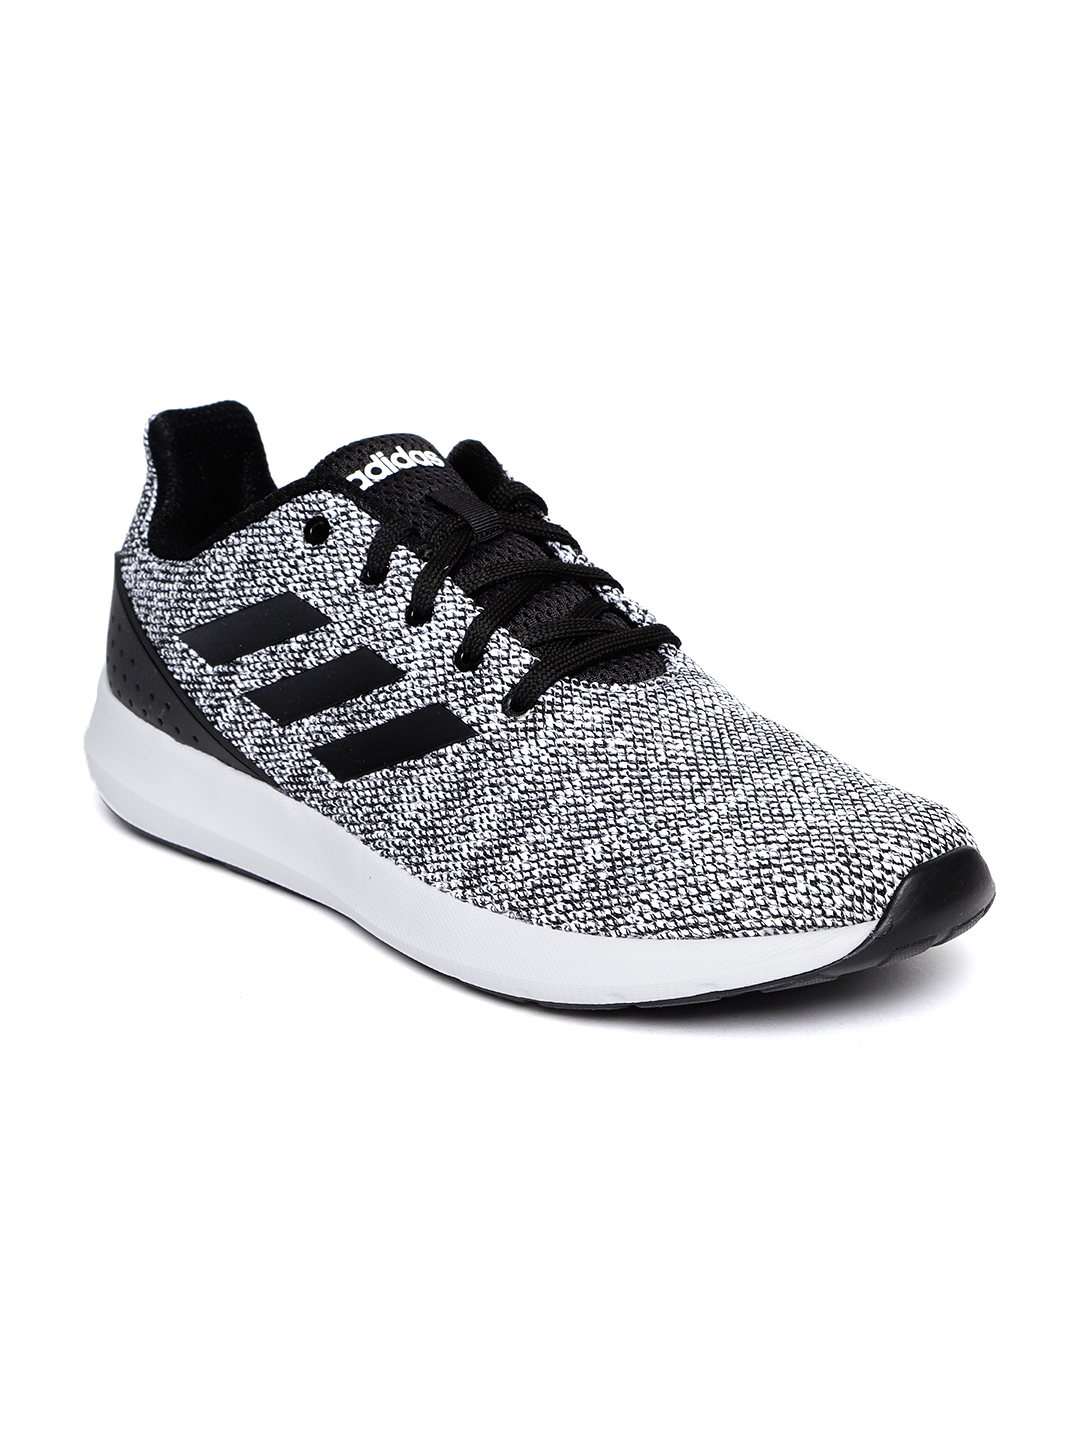 sports shoes adidas men